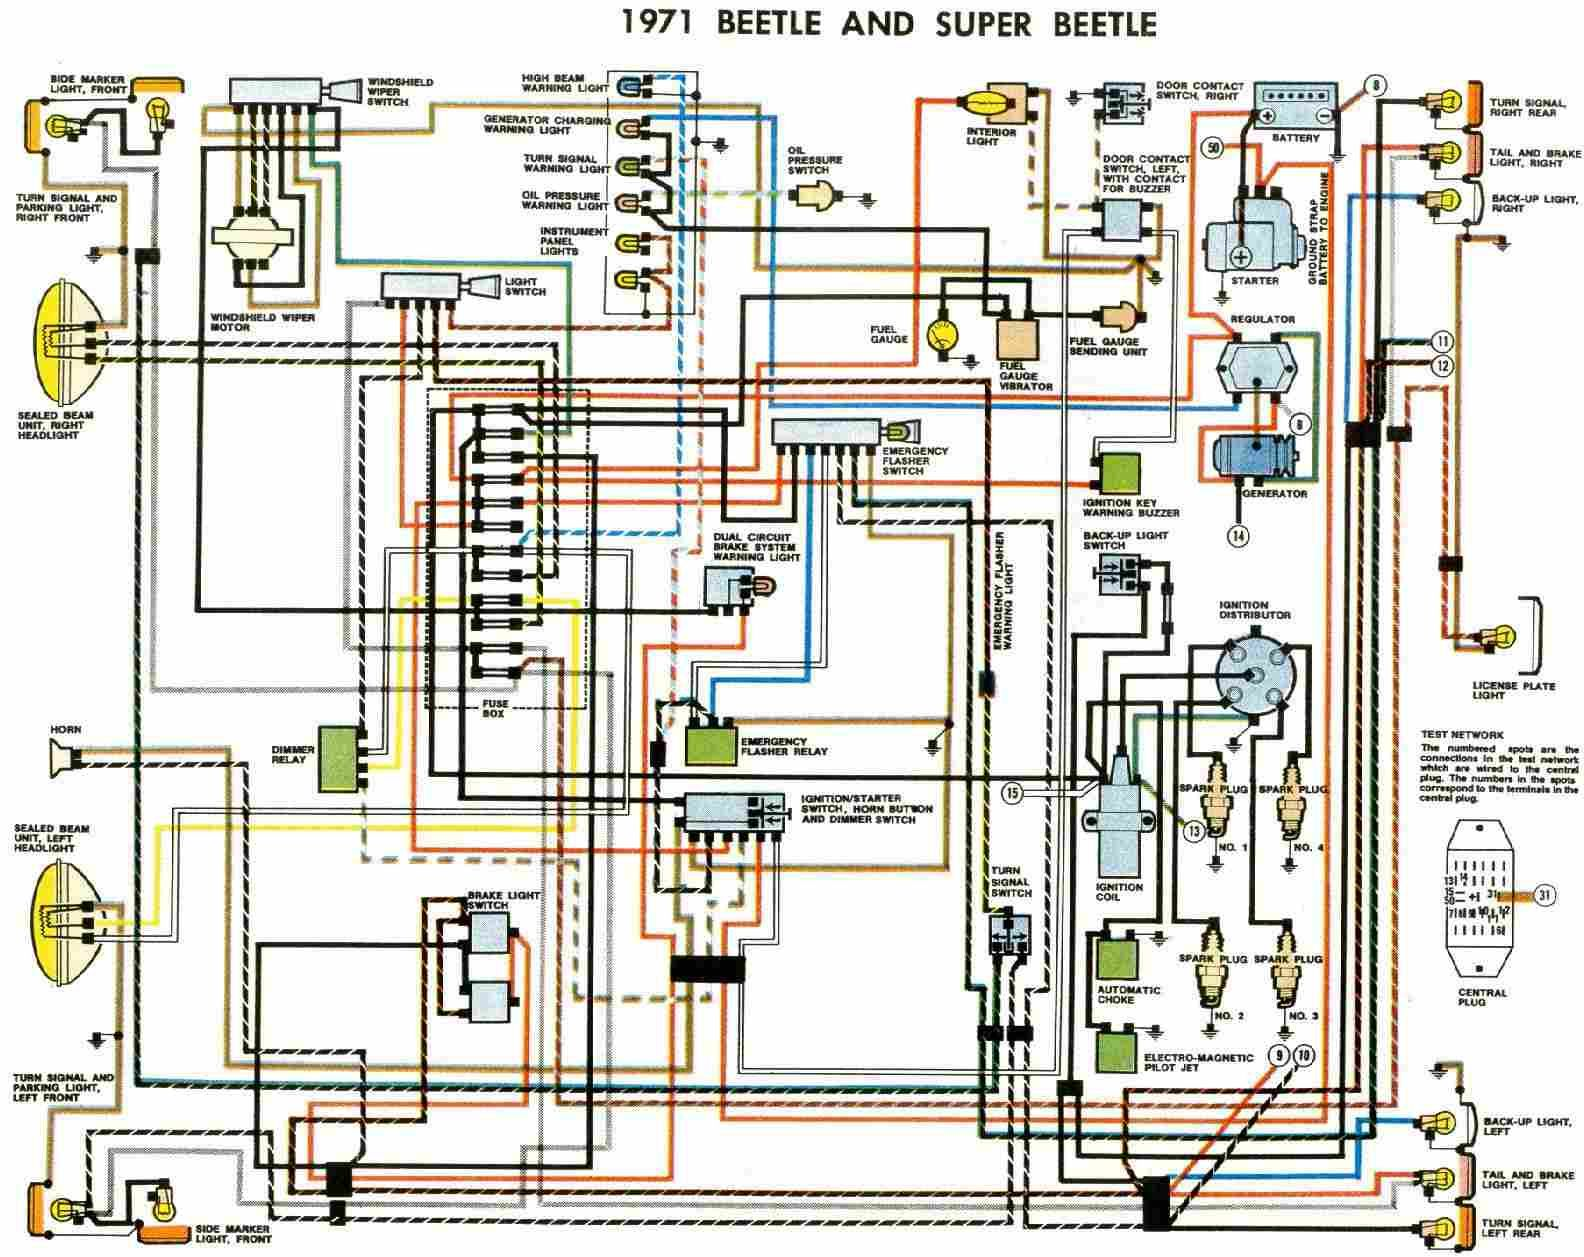 free auto wiring diagram 1971 vw beetle and super beetle wiring rh pinterest com 74 Super Beetle Wiring Diagram 1968 VW Beetle Wiring Diagram